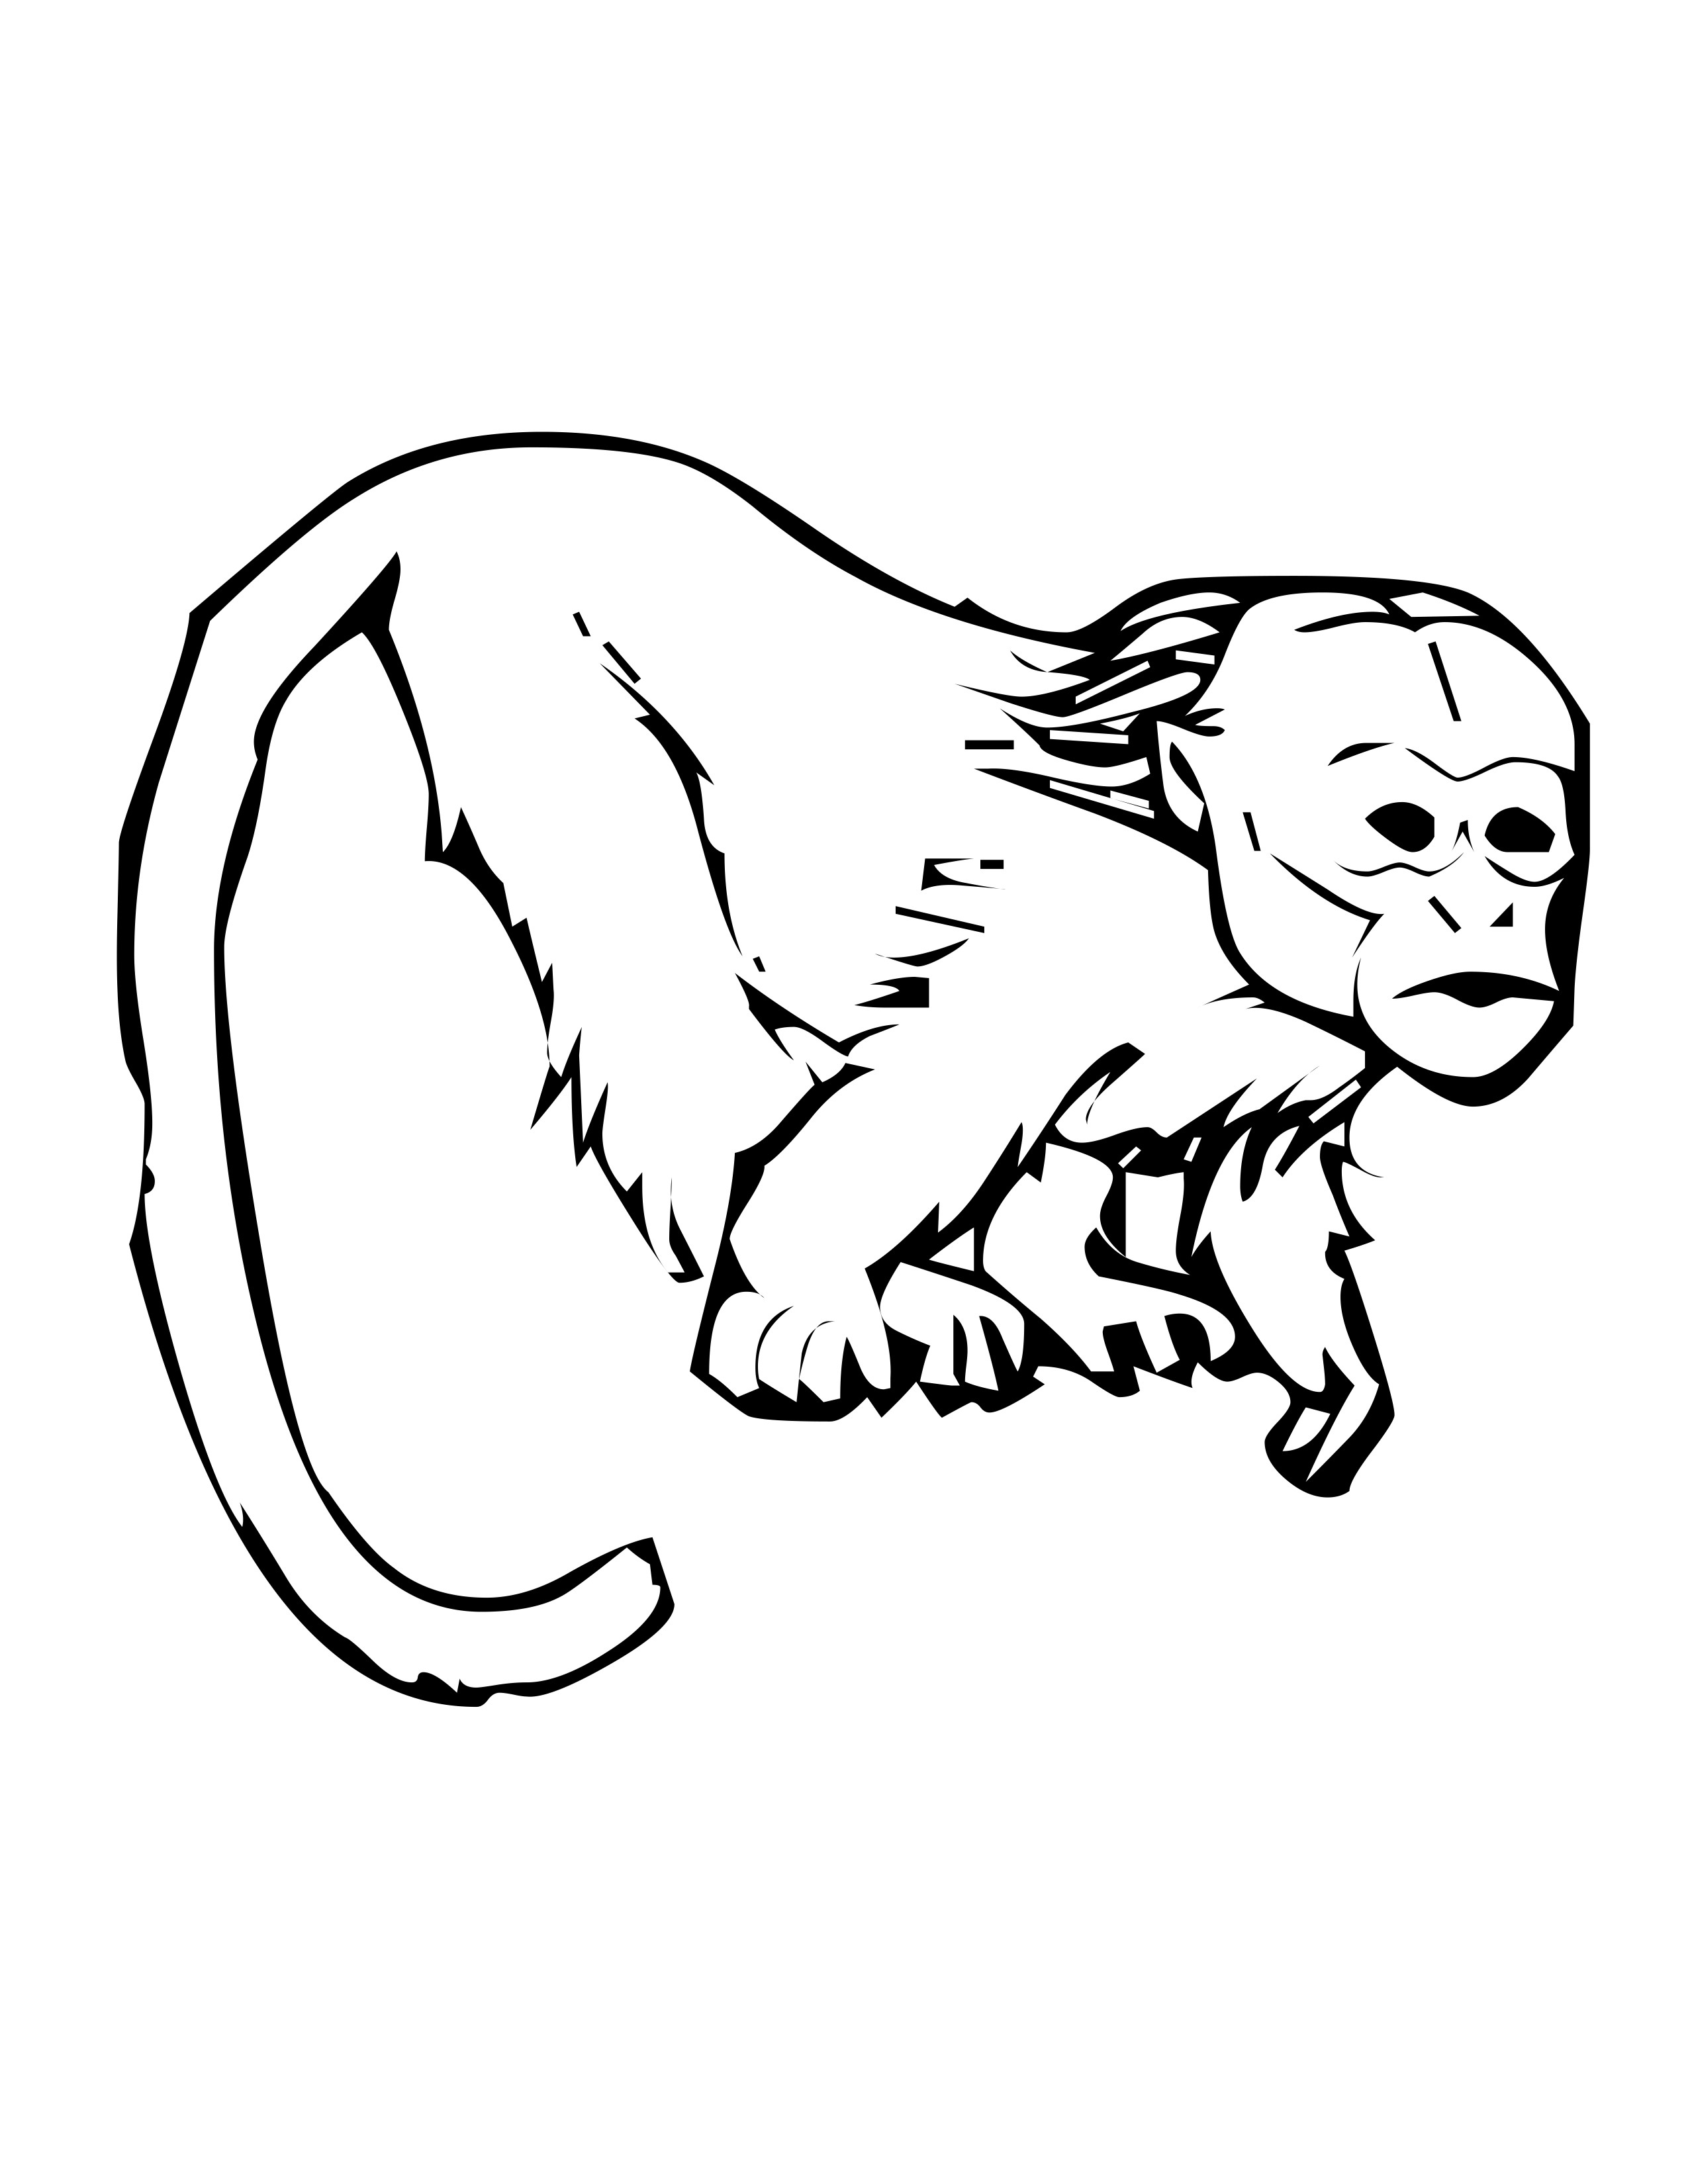 Primate Coloring Pages